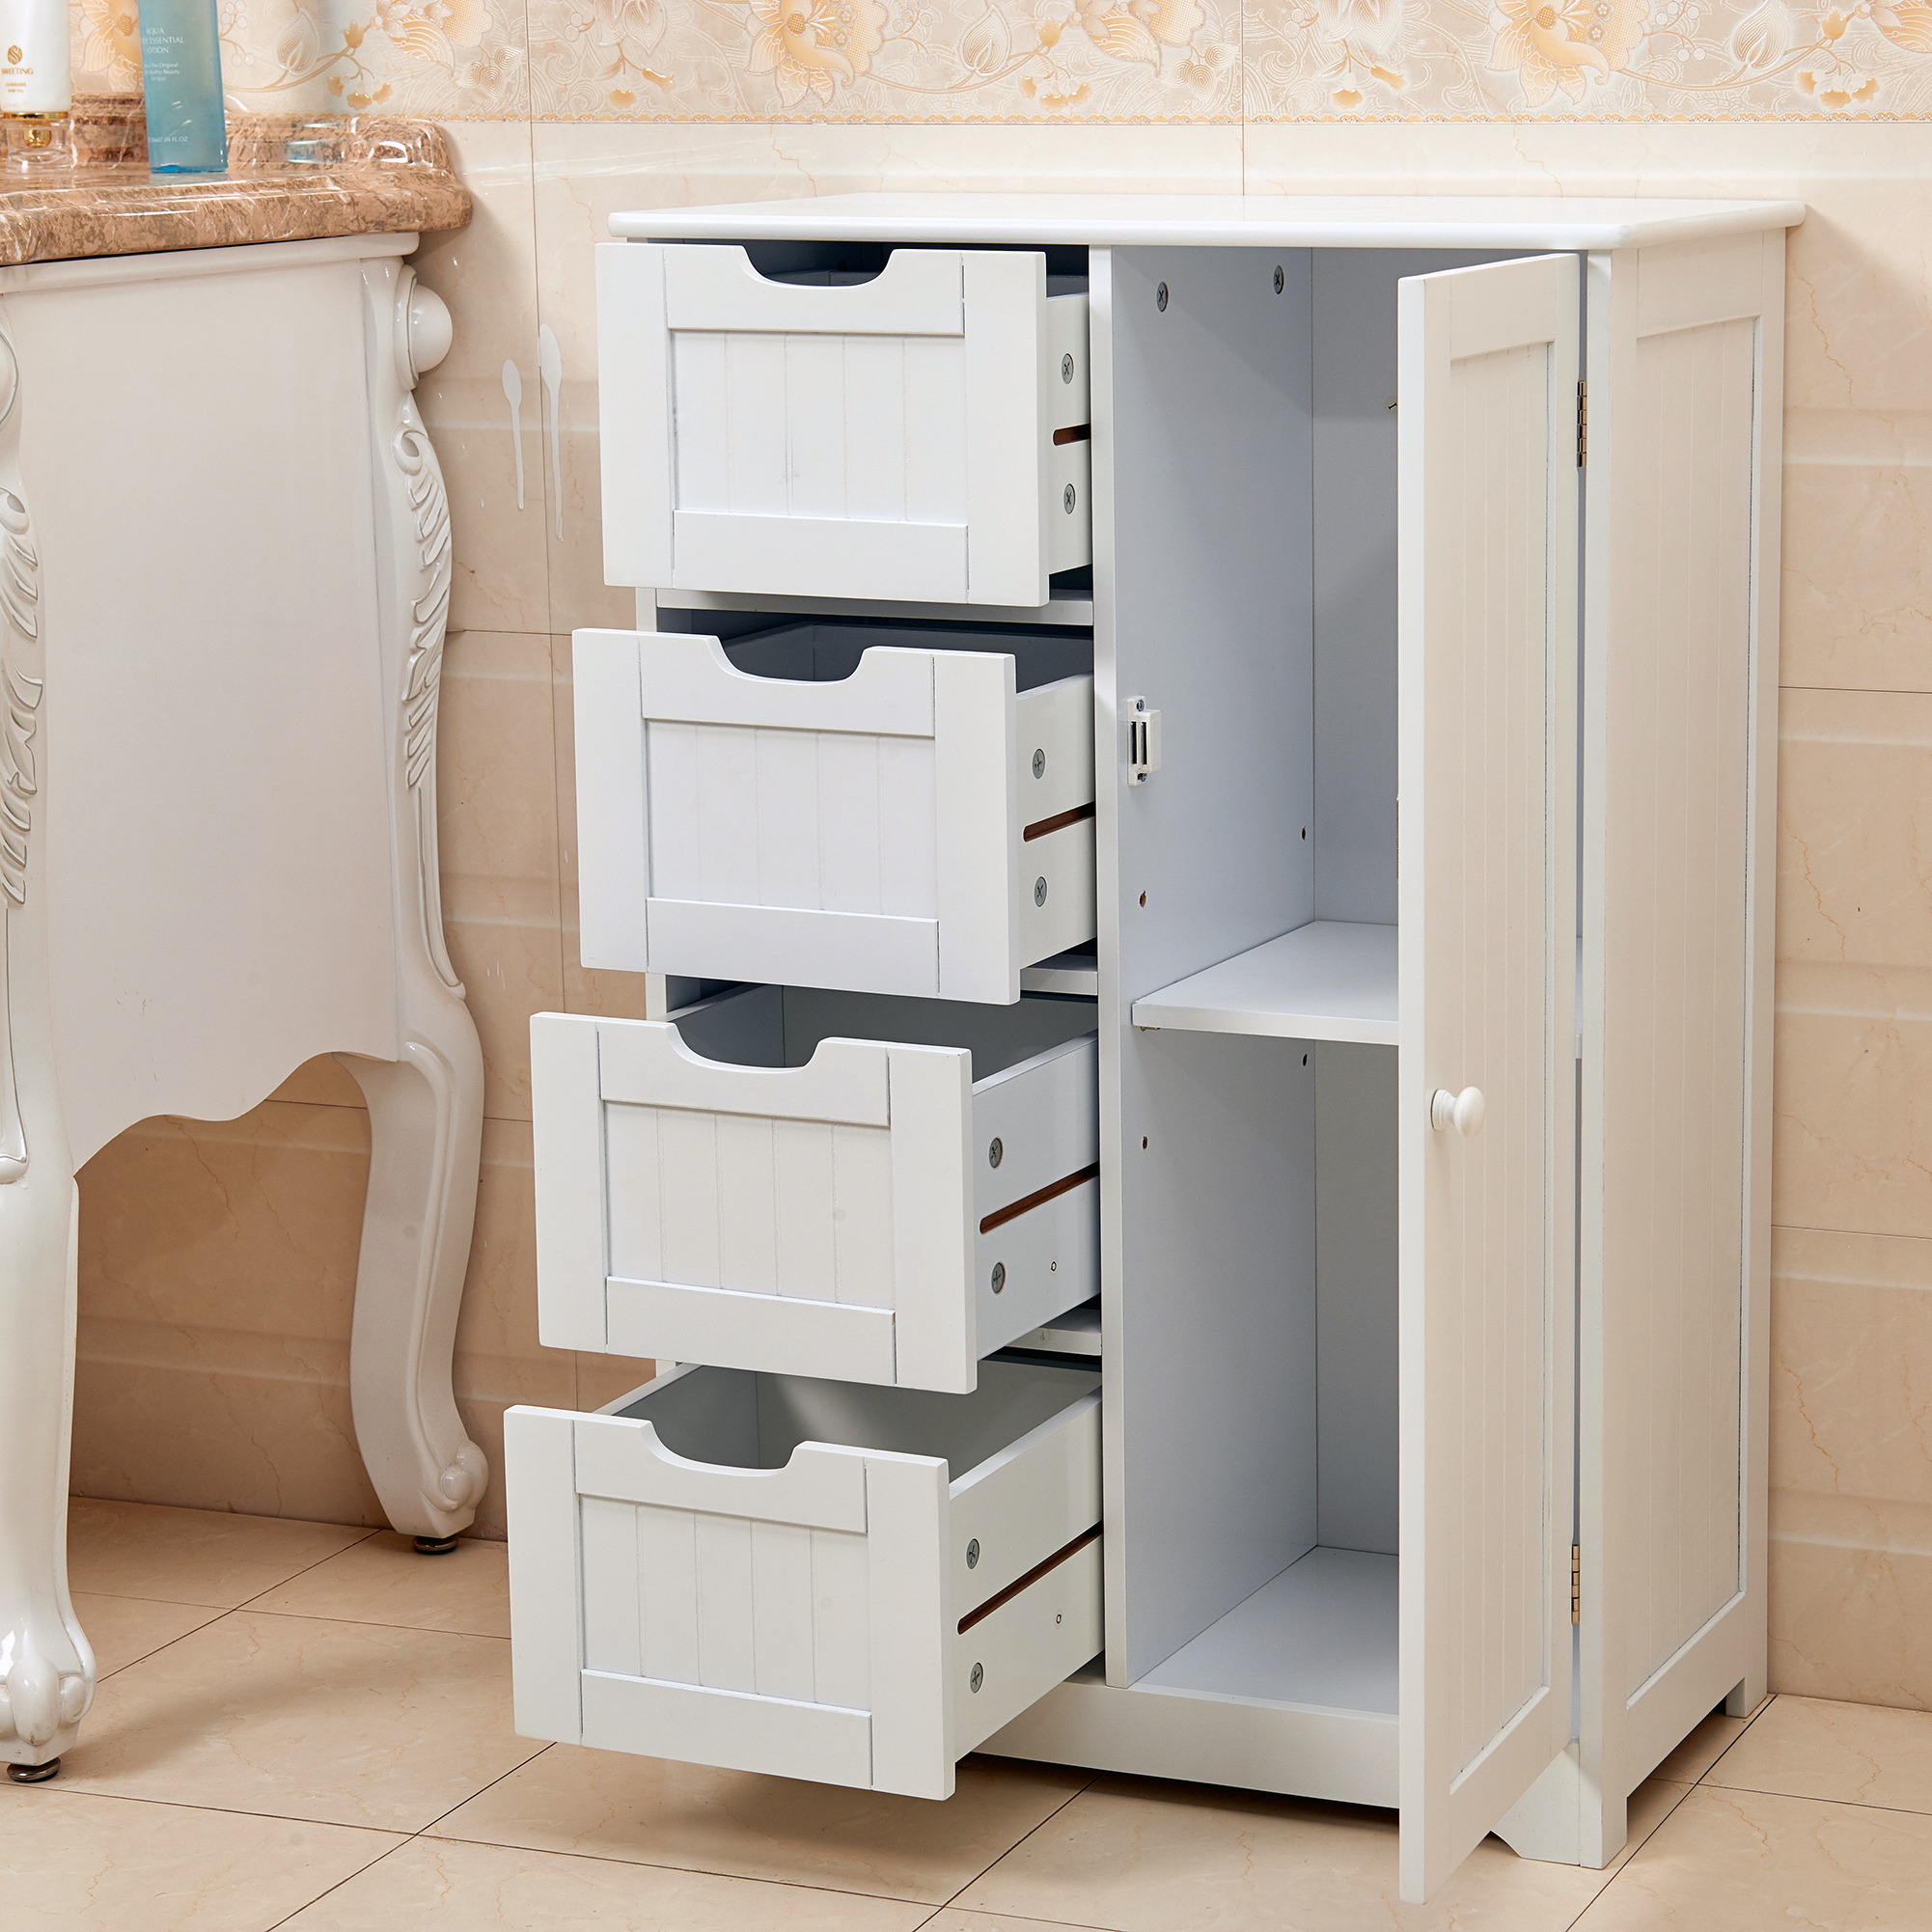 12 bathroom cabinet white wooden 4 drawer bathroom storage cupboard cabinet 10019